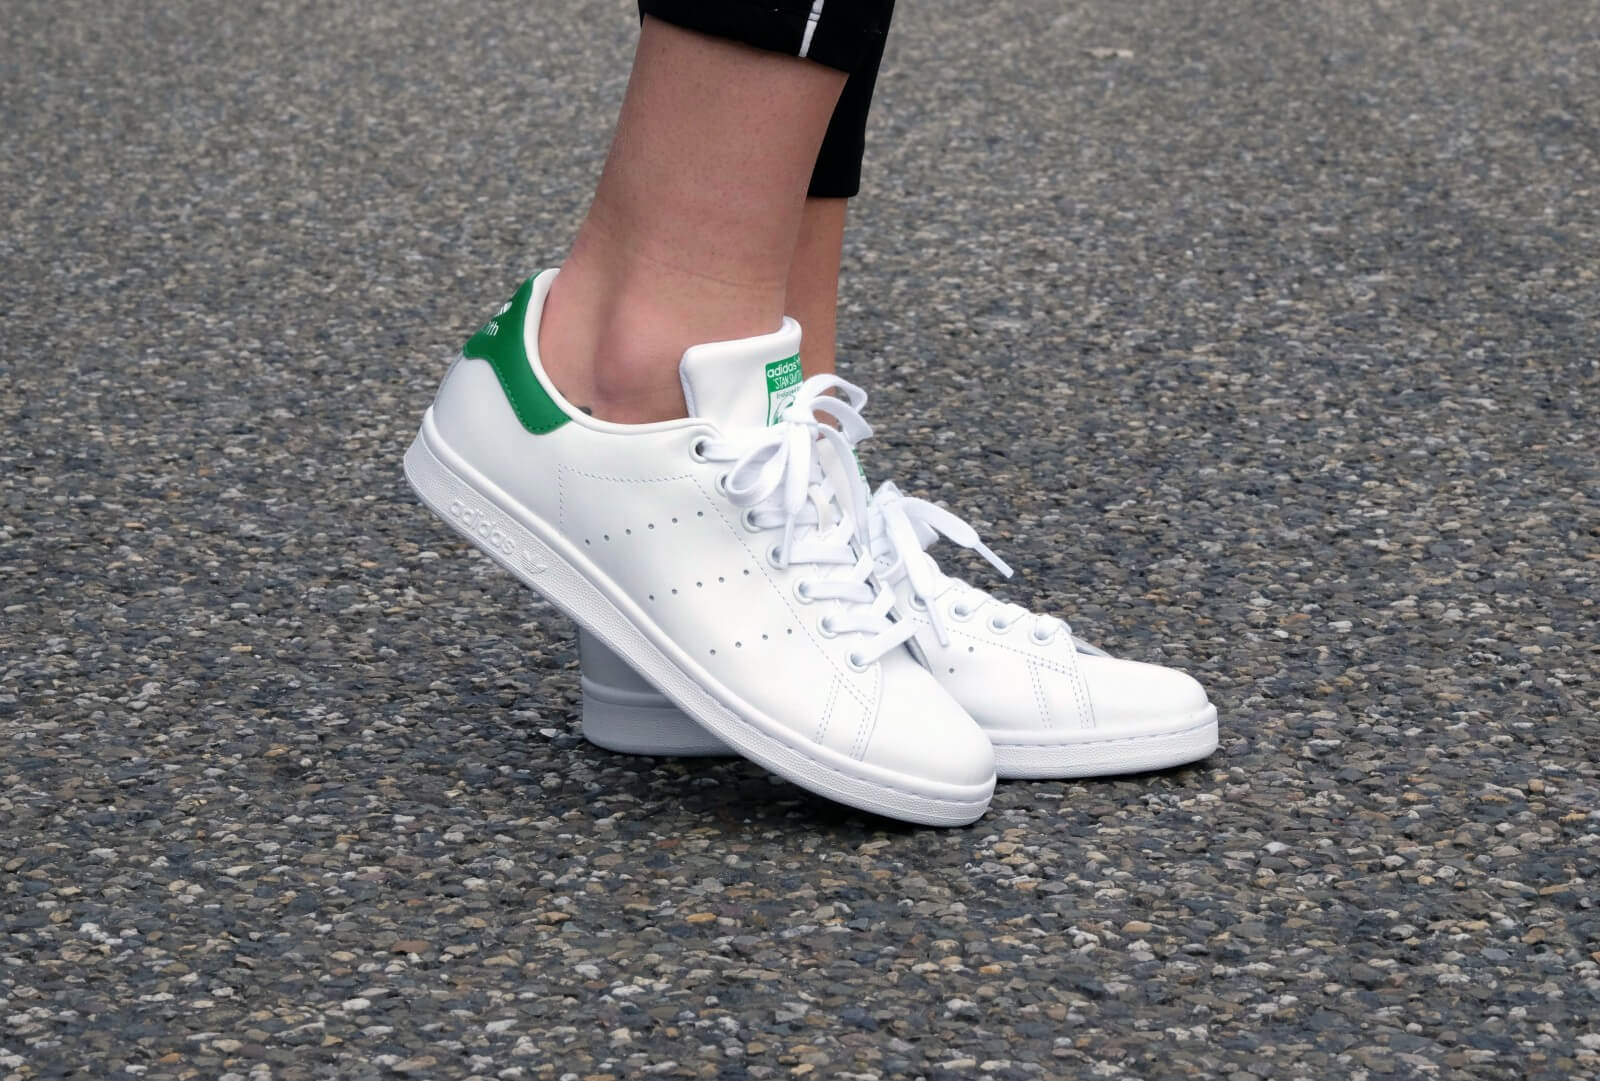 Prevención Facultad Th  Adidas Stan Smith - Footwear White / Core White / Green -